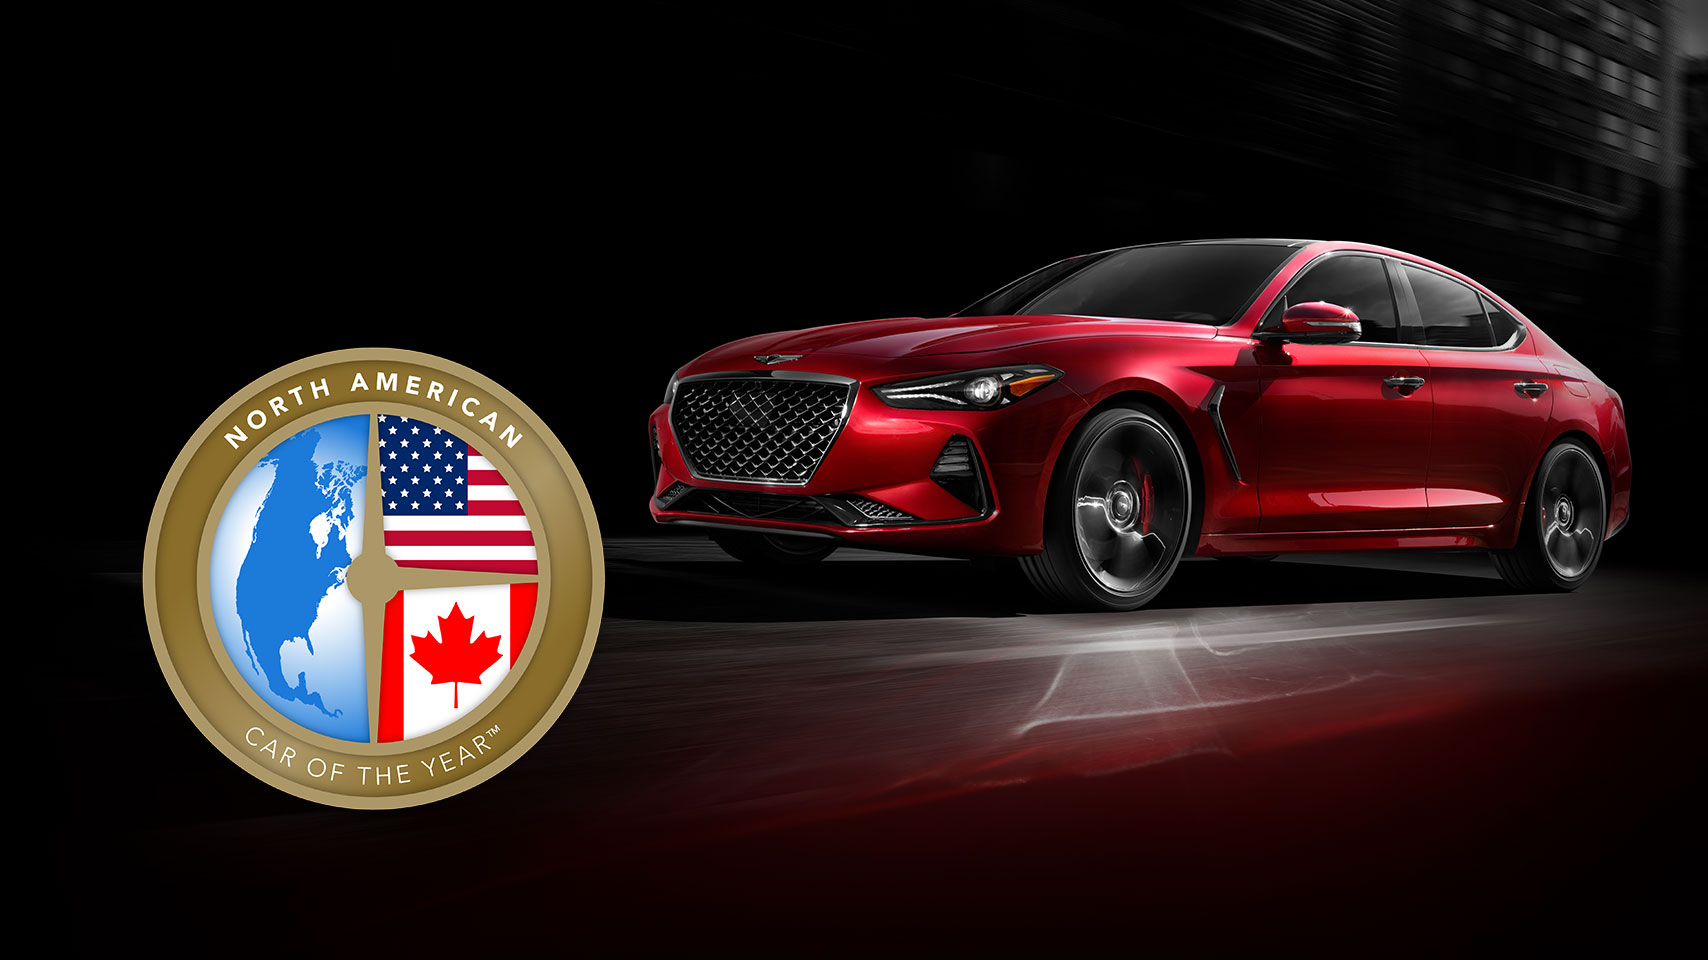 2019 Genesis G70 shown in Havana Red with North American Car of the Year award.